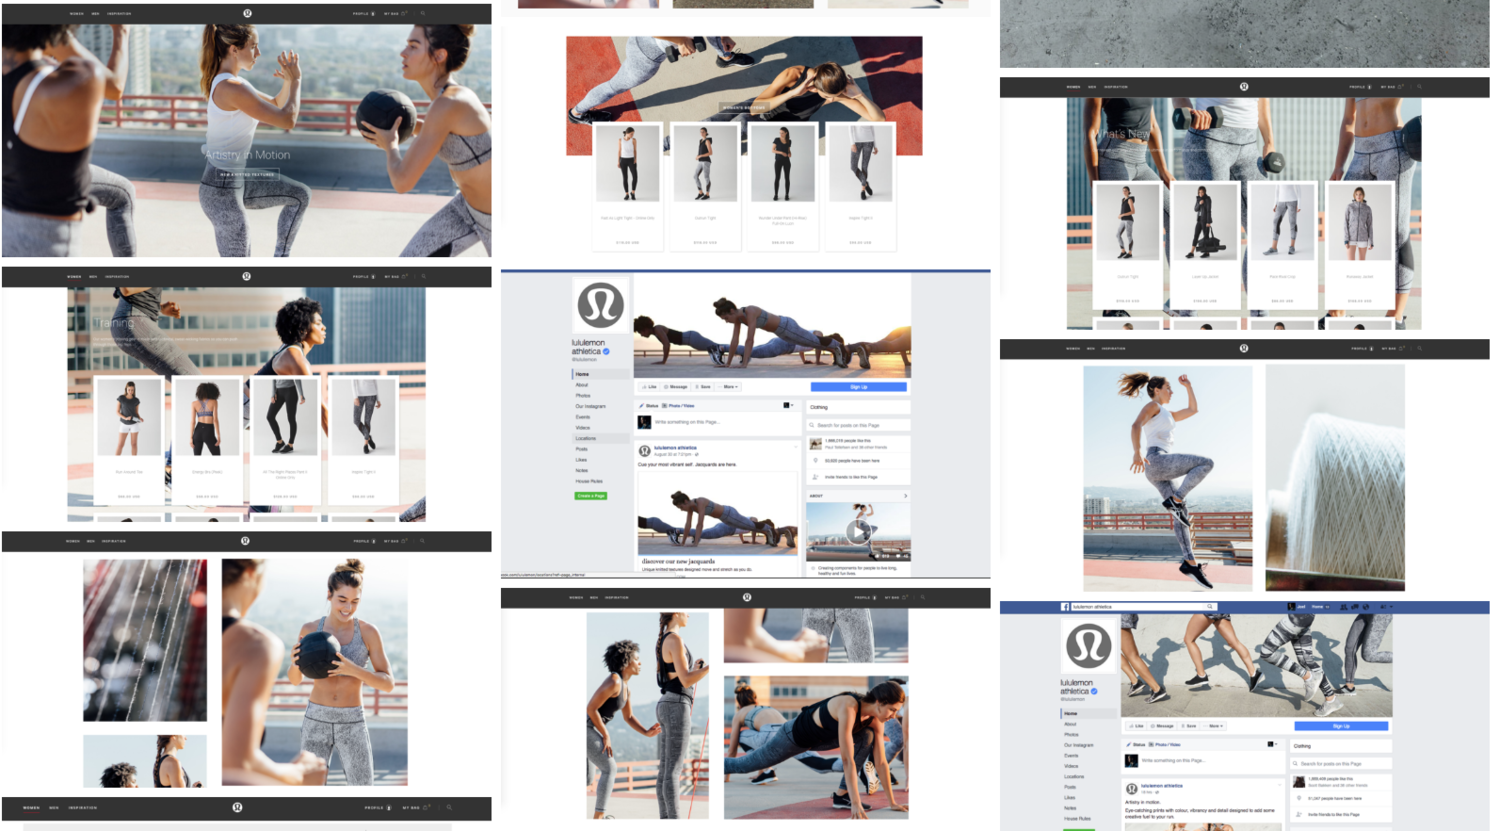 Lululemon: Behind the scenes | Joel Bear Blog